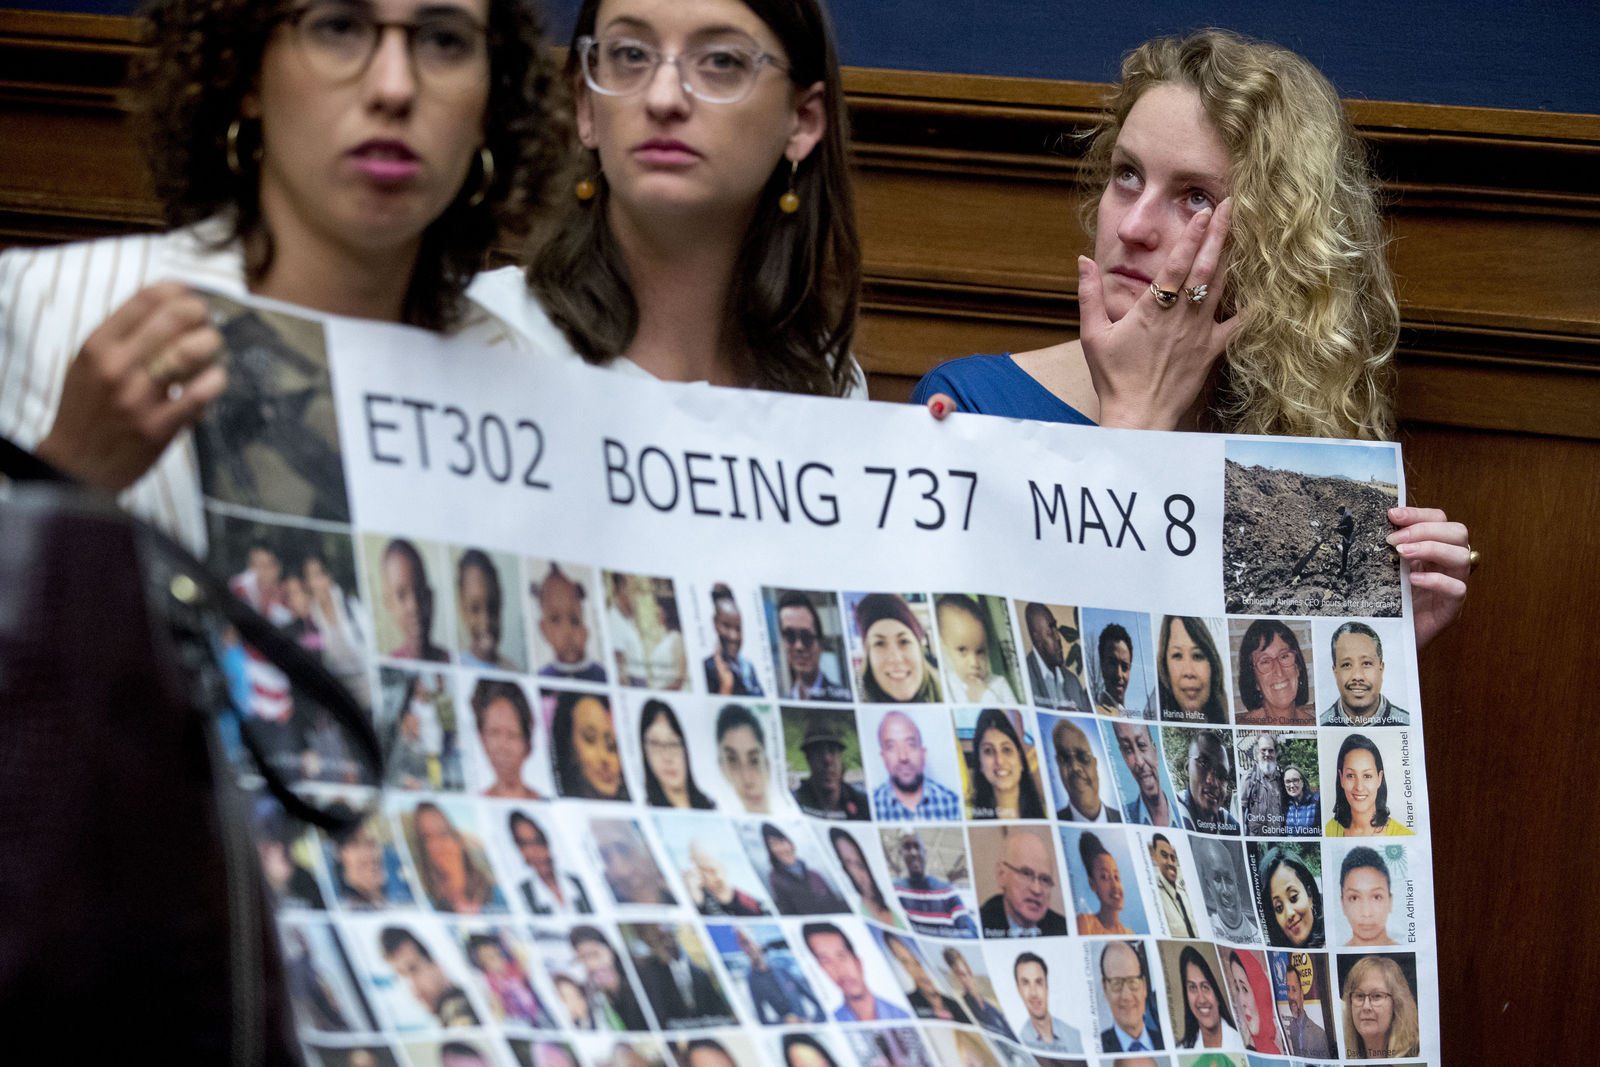 Deveney Williams, right, wipes a tear from her eye as she and Diana Sotomayor, left, and Hayley Freedman, center, all friends of Samya Rose Stumo, hold up a sign depicting those lost in Ethiopian Airlines Flight 302 during a House Committee on Transportation and Infrastructure hearing on the status of the Boeing 737 MAX on Capitol Hill in Washington, Wednesday, June 19, 2019.{ } (AP Photo/Andrew Harnik)